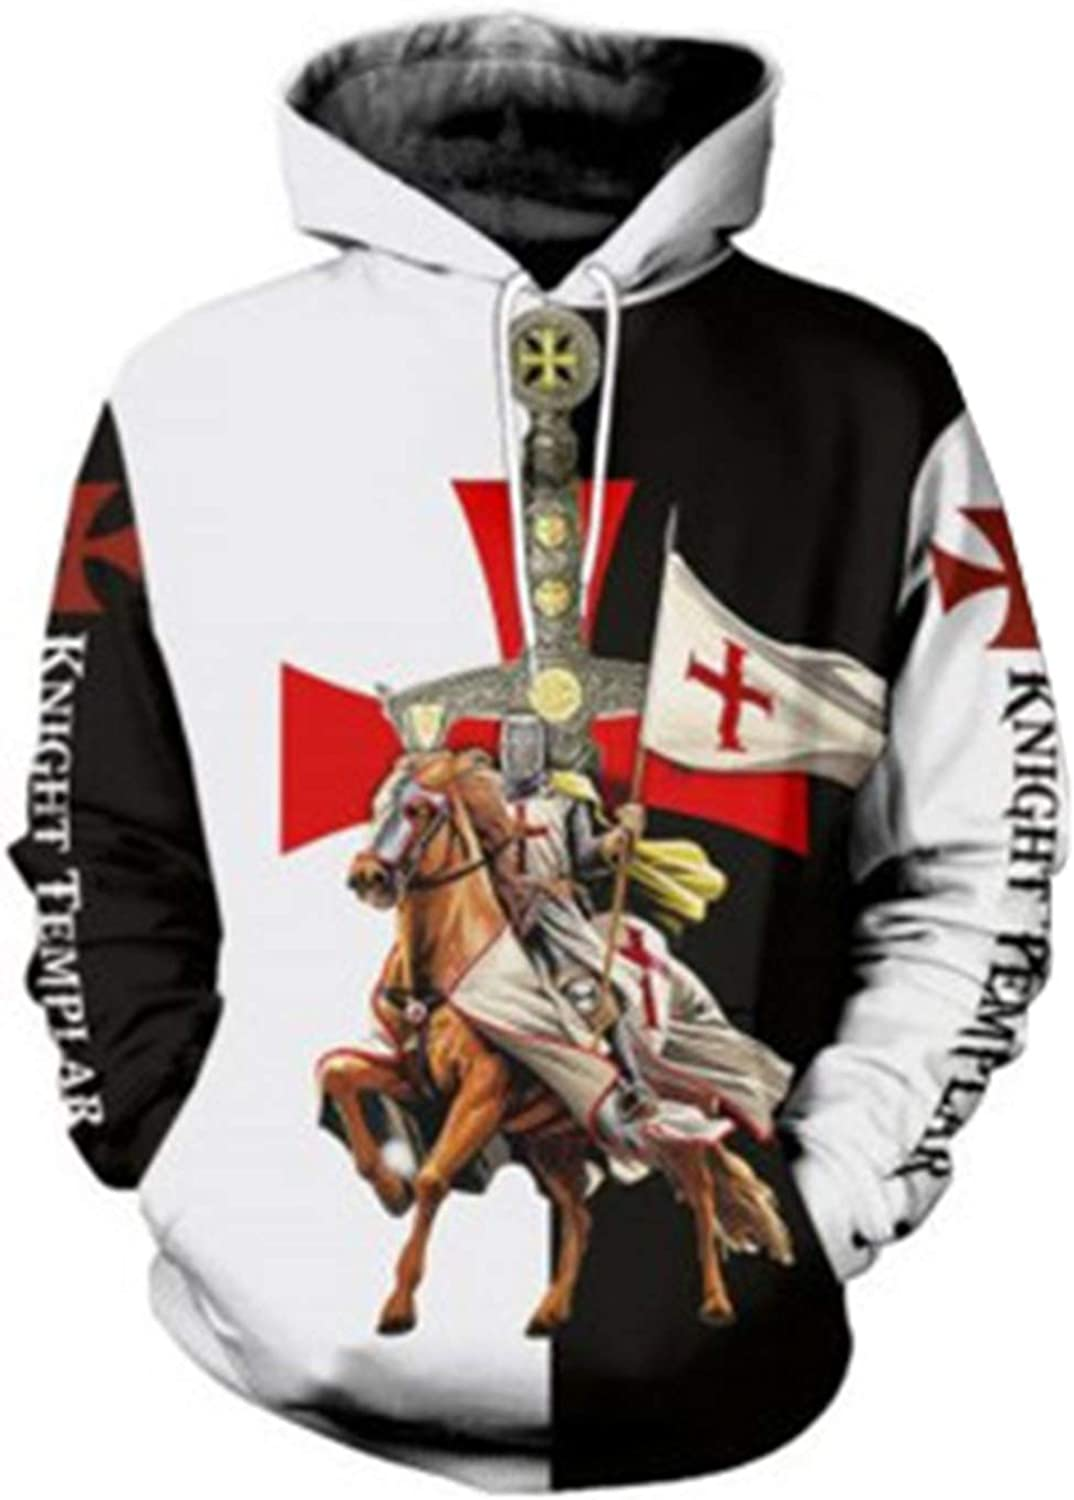 New Medieval Knights Templar hoodie Men/'s Pullover Hoodie S-3XL Free Shipping